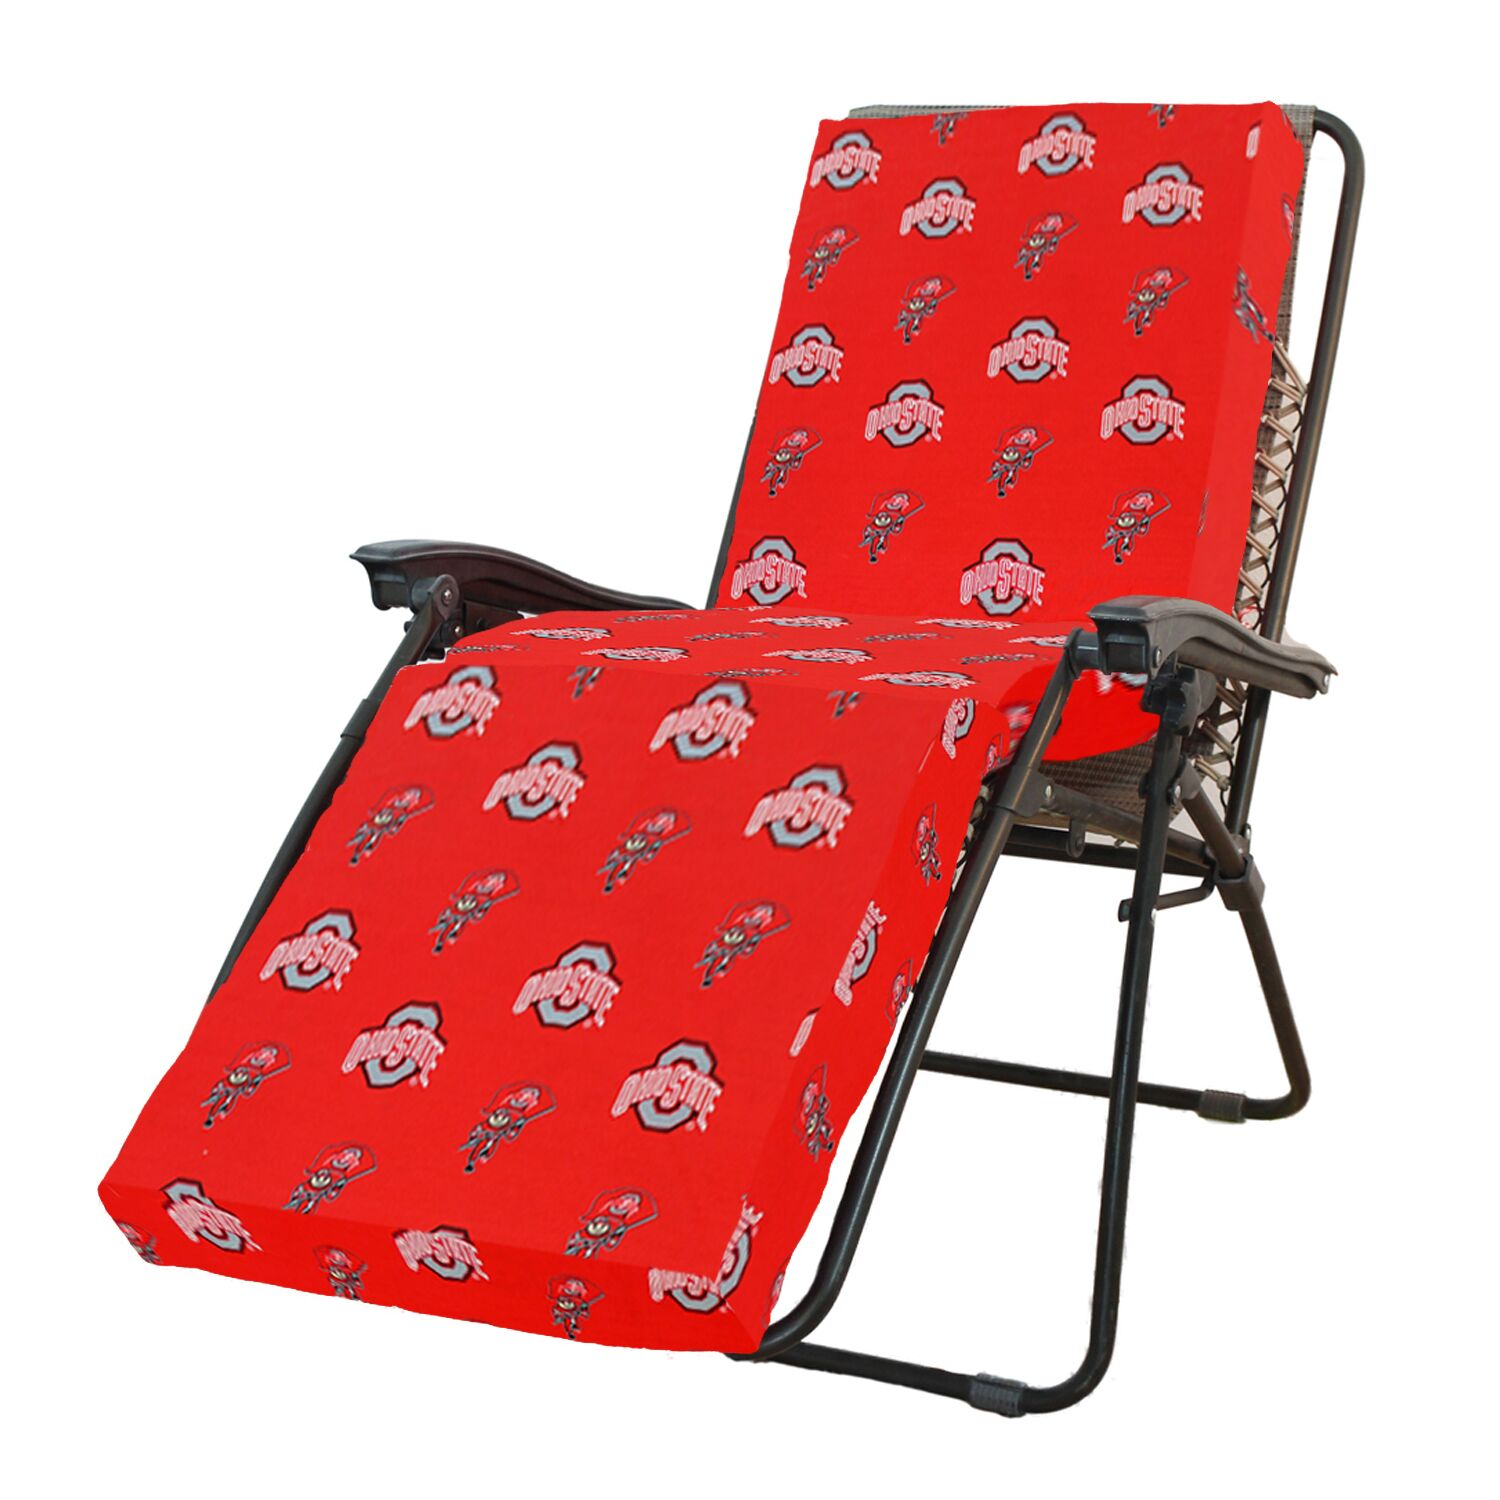 NCAA Ohio State Indoor/Outdoor Chaise Lounge Cushion